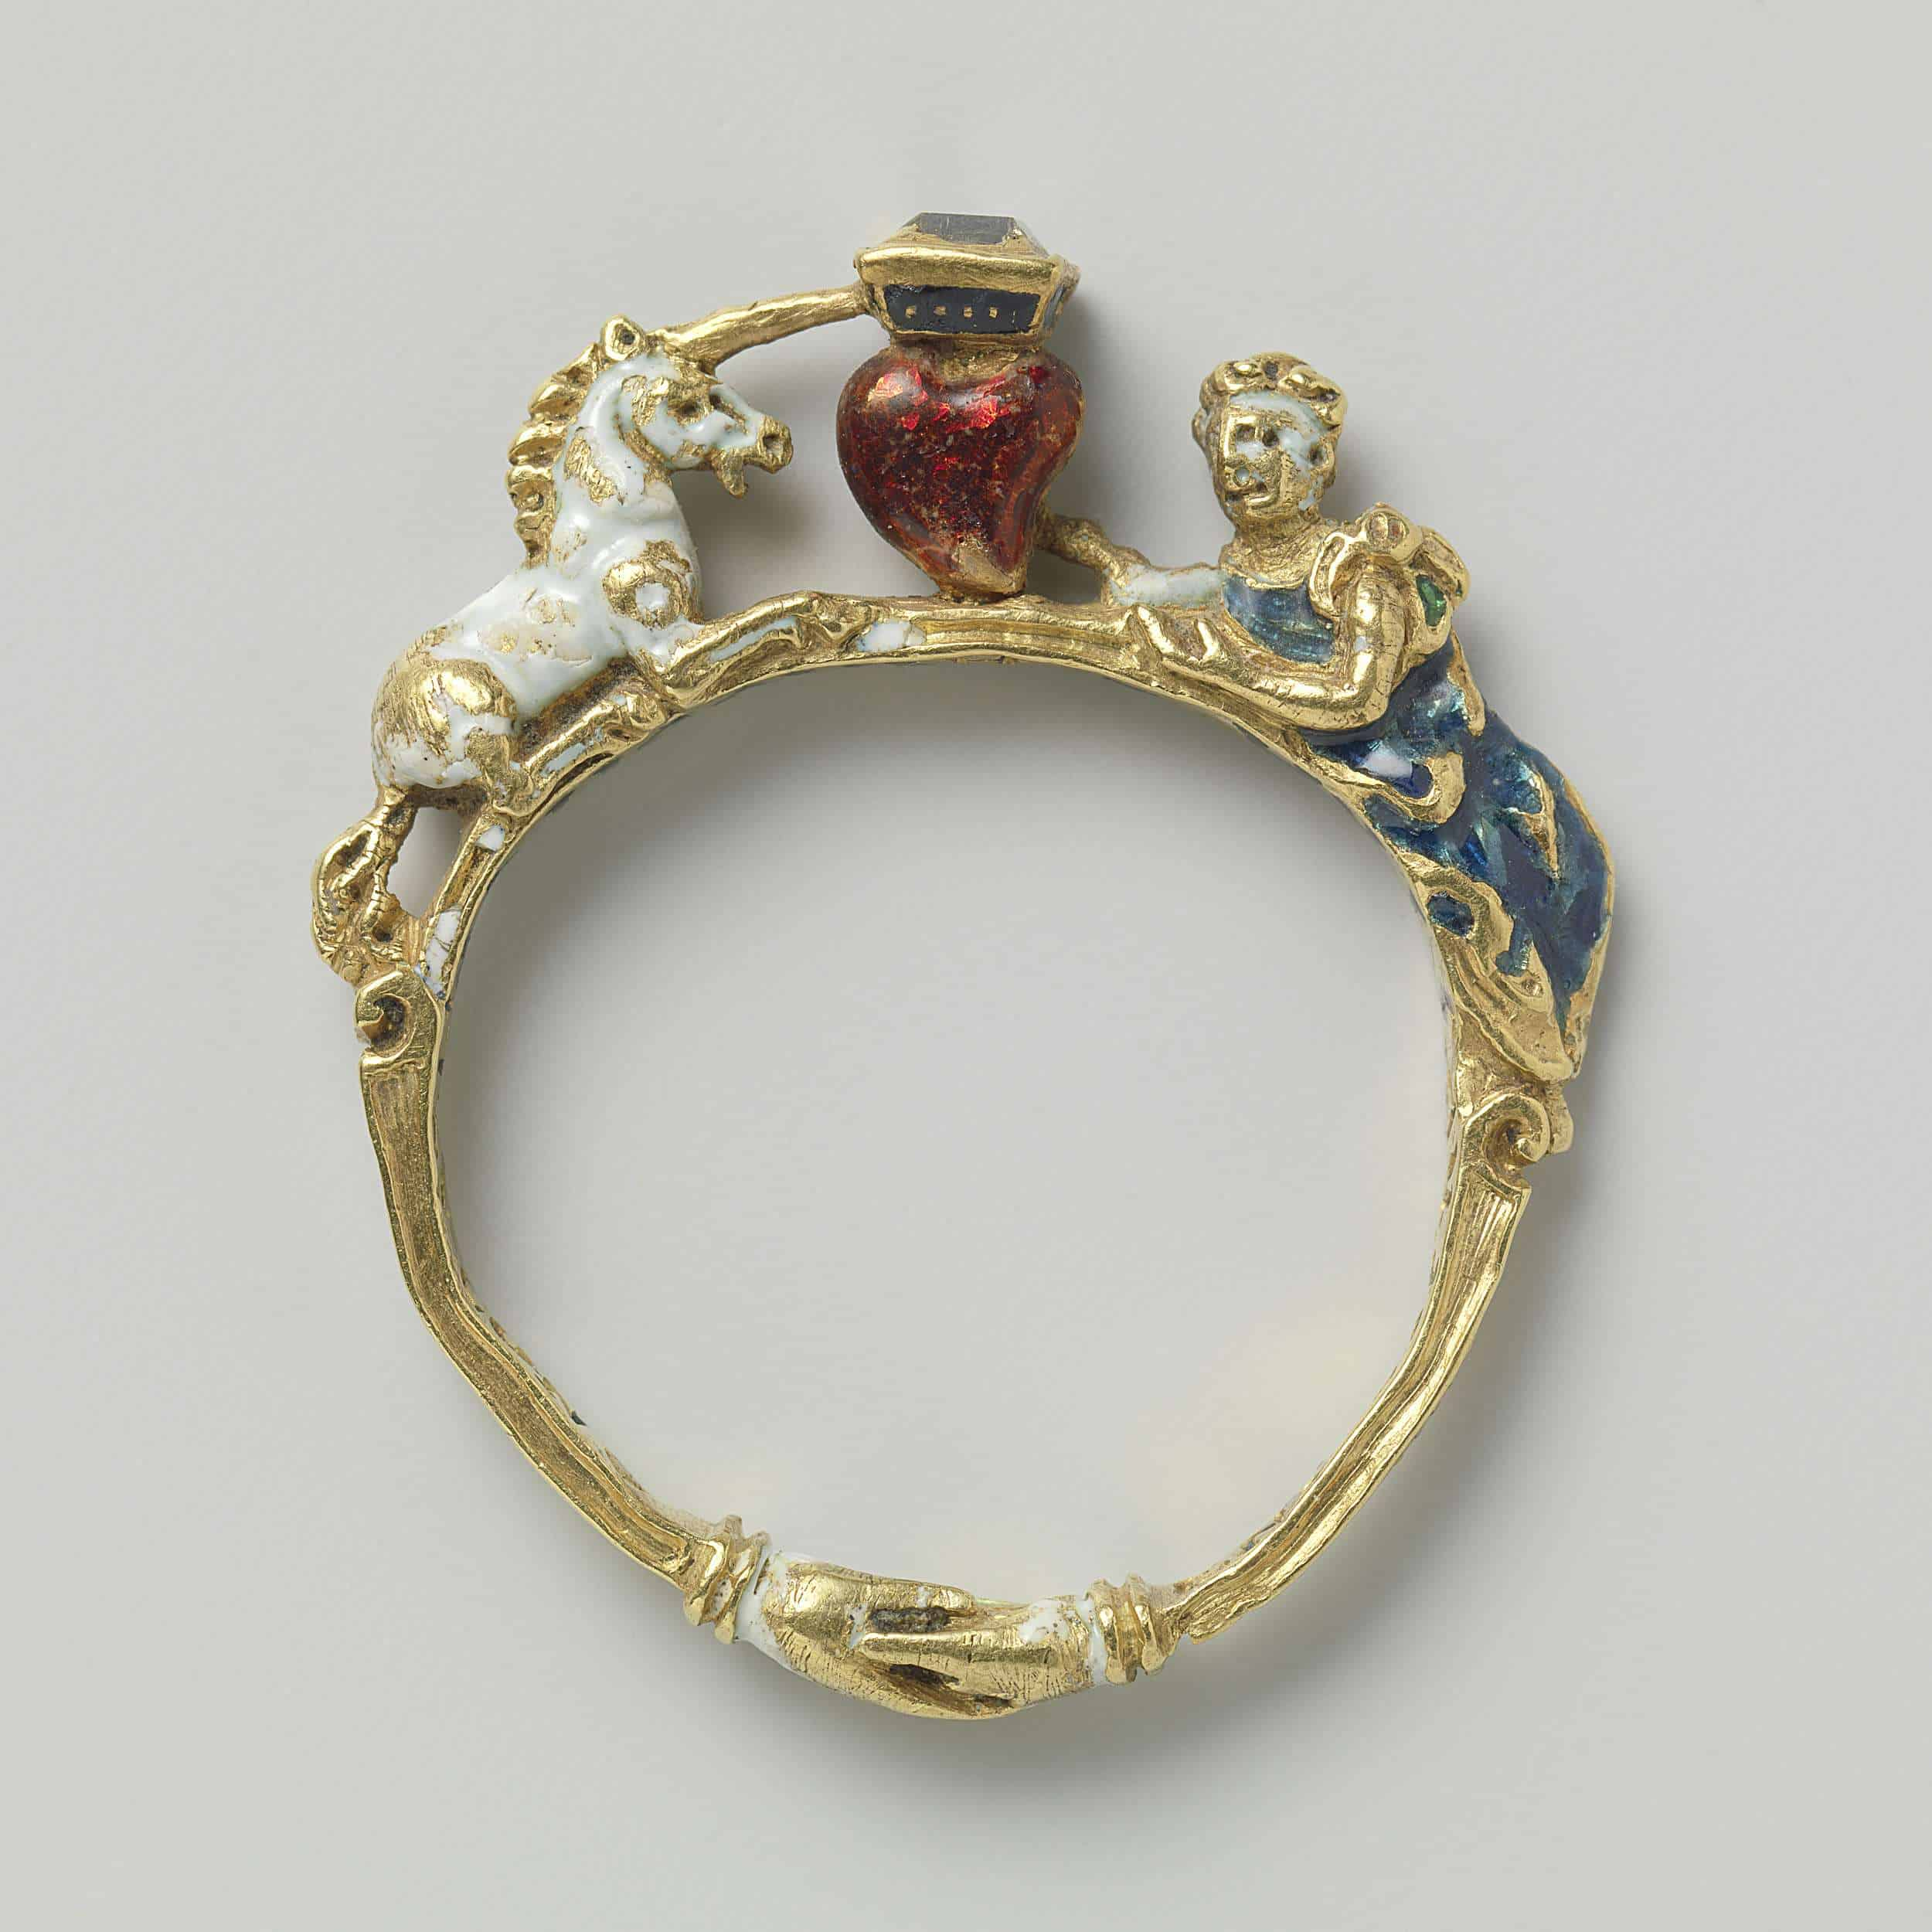 1f1a6e199e240 Rings: Ancient to Neoclassical | Antique Jewelry University